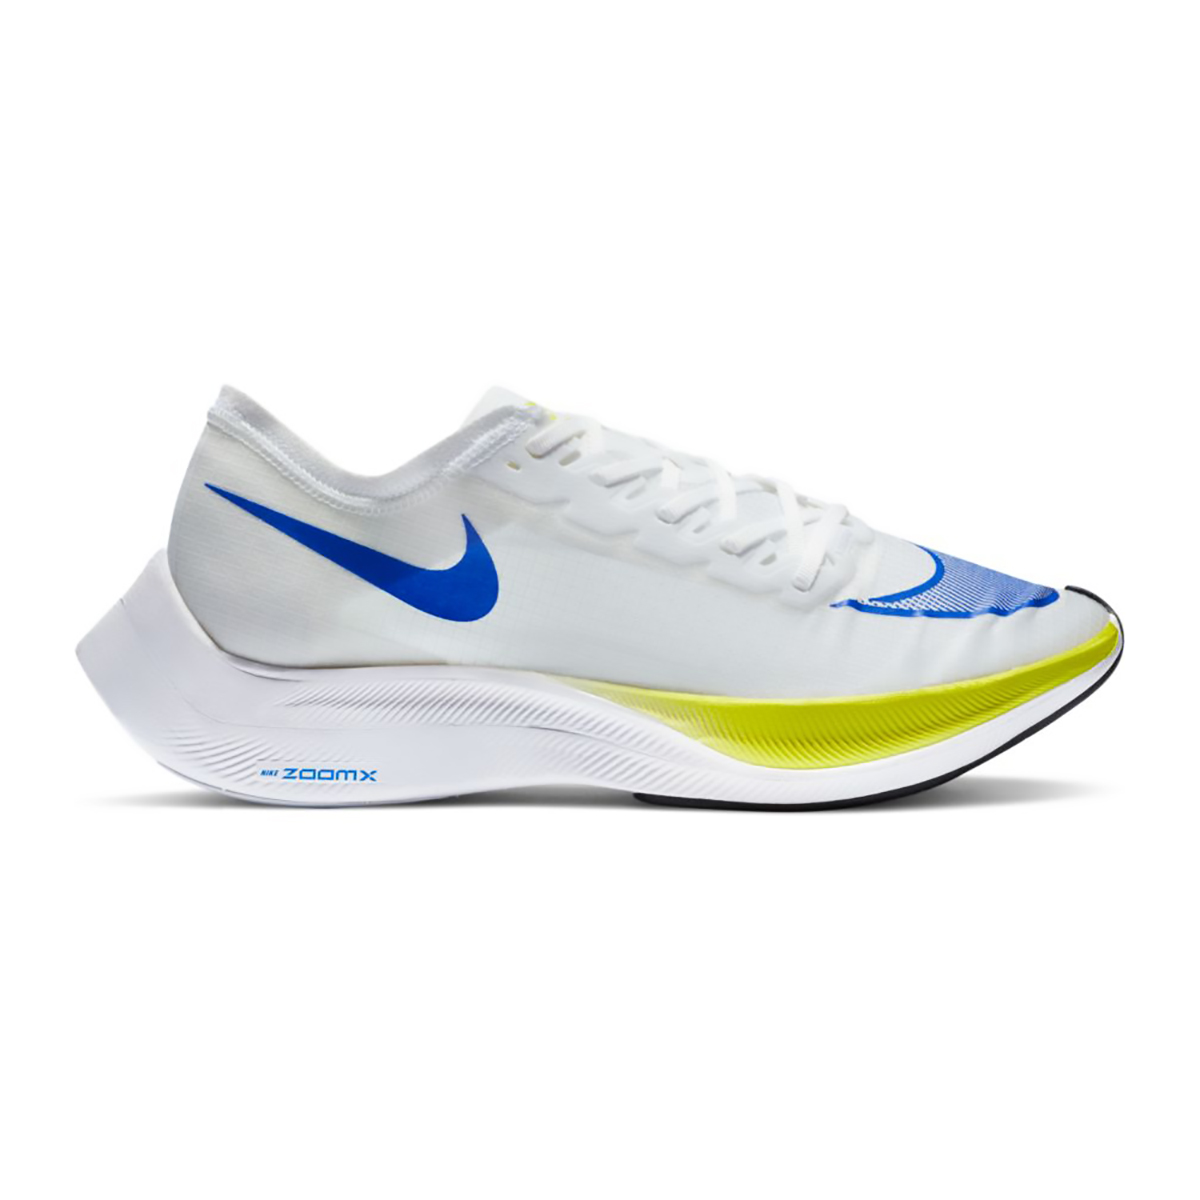 Nike ZoomX Vaporfly NEXT% Running Shoe - Color: White/Racer Blue/Cyber/Black - Size: M5/W6.5 - Width: Regular, White/Racer Blue/Cyber/Black, large, image 1